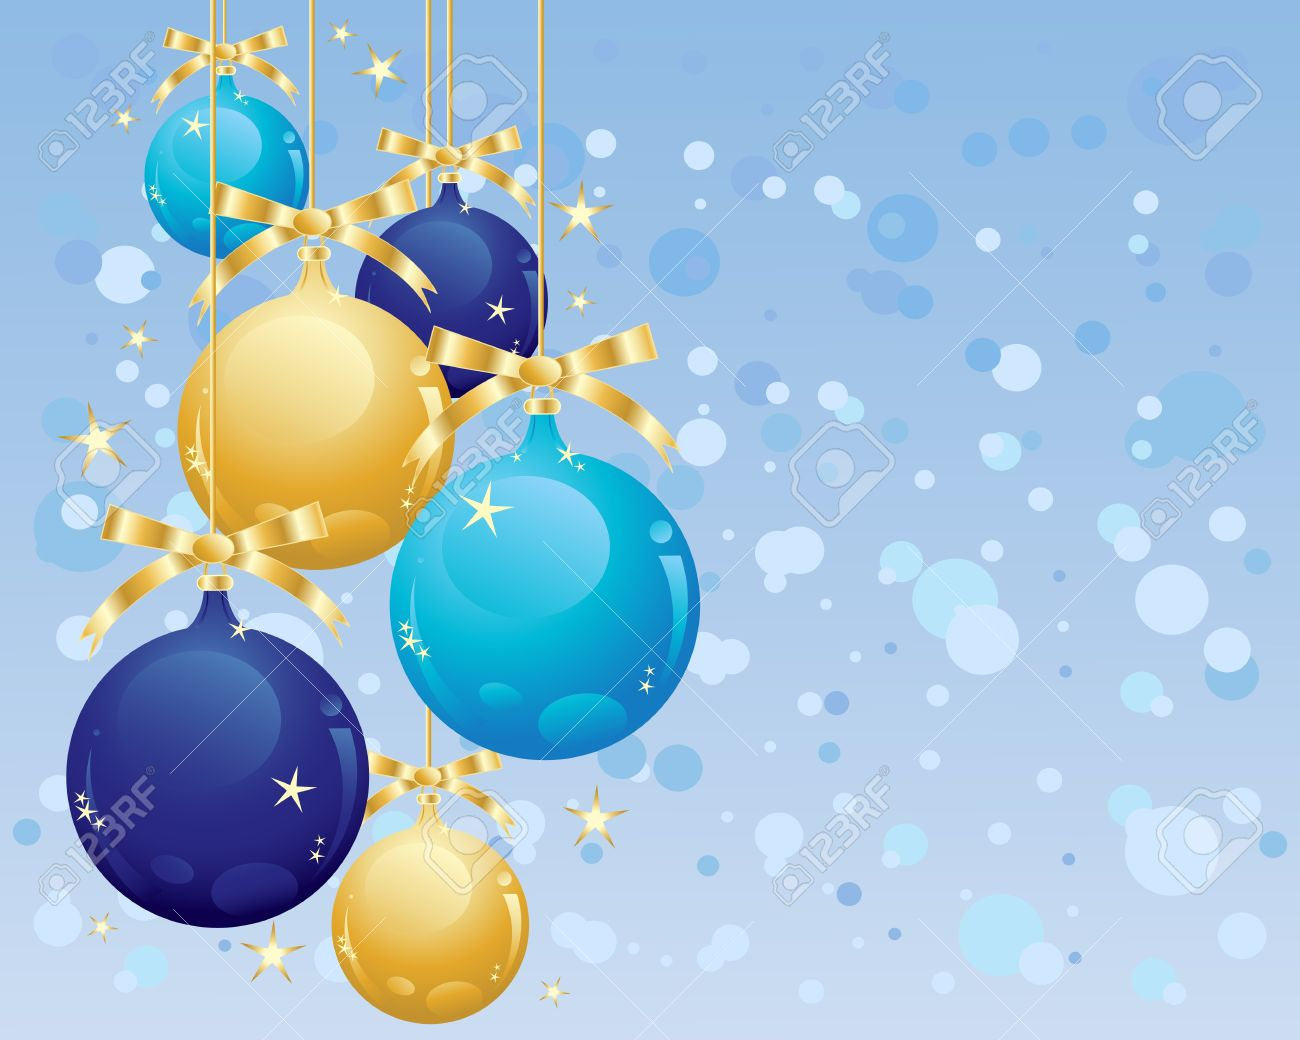 Blue and gold christmas decorations - An Illustration Of Metallic Gold And Blue Bauble Christmas Decorations And Ribbon On Golden Thread With